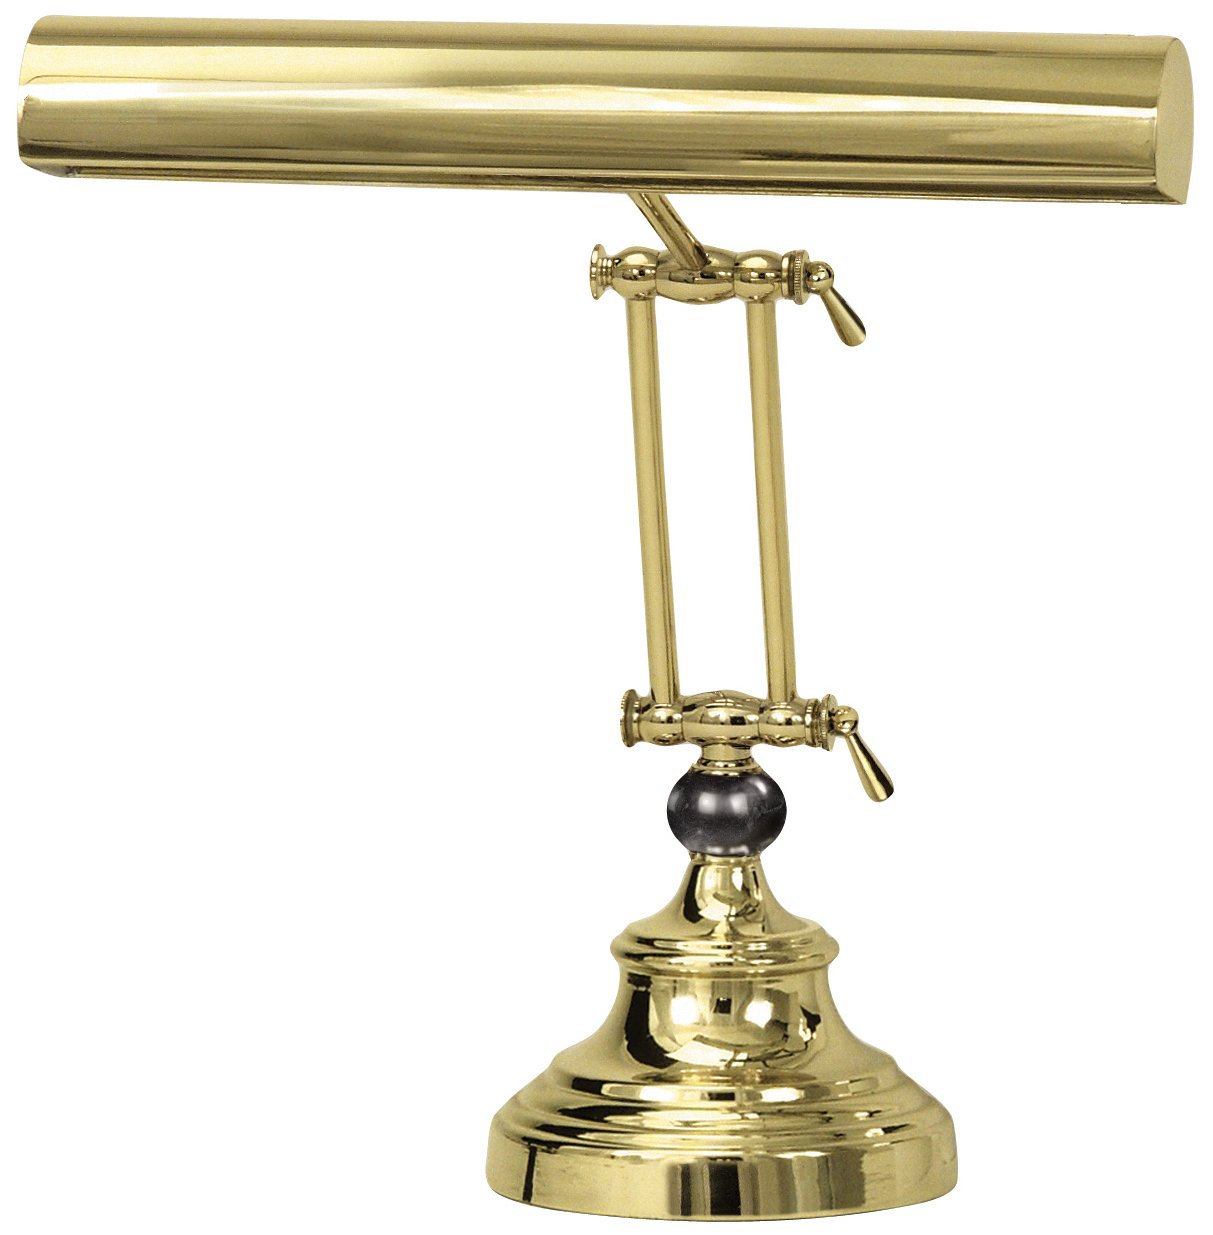 House of Troy AP14-42-61 Advent Piano/Desk Lamp, 14'', Polished Brass by House of Troy (Image #1)